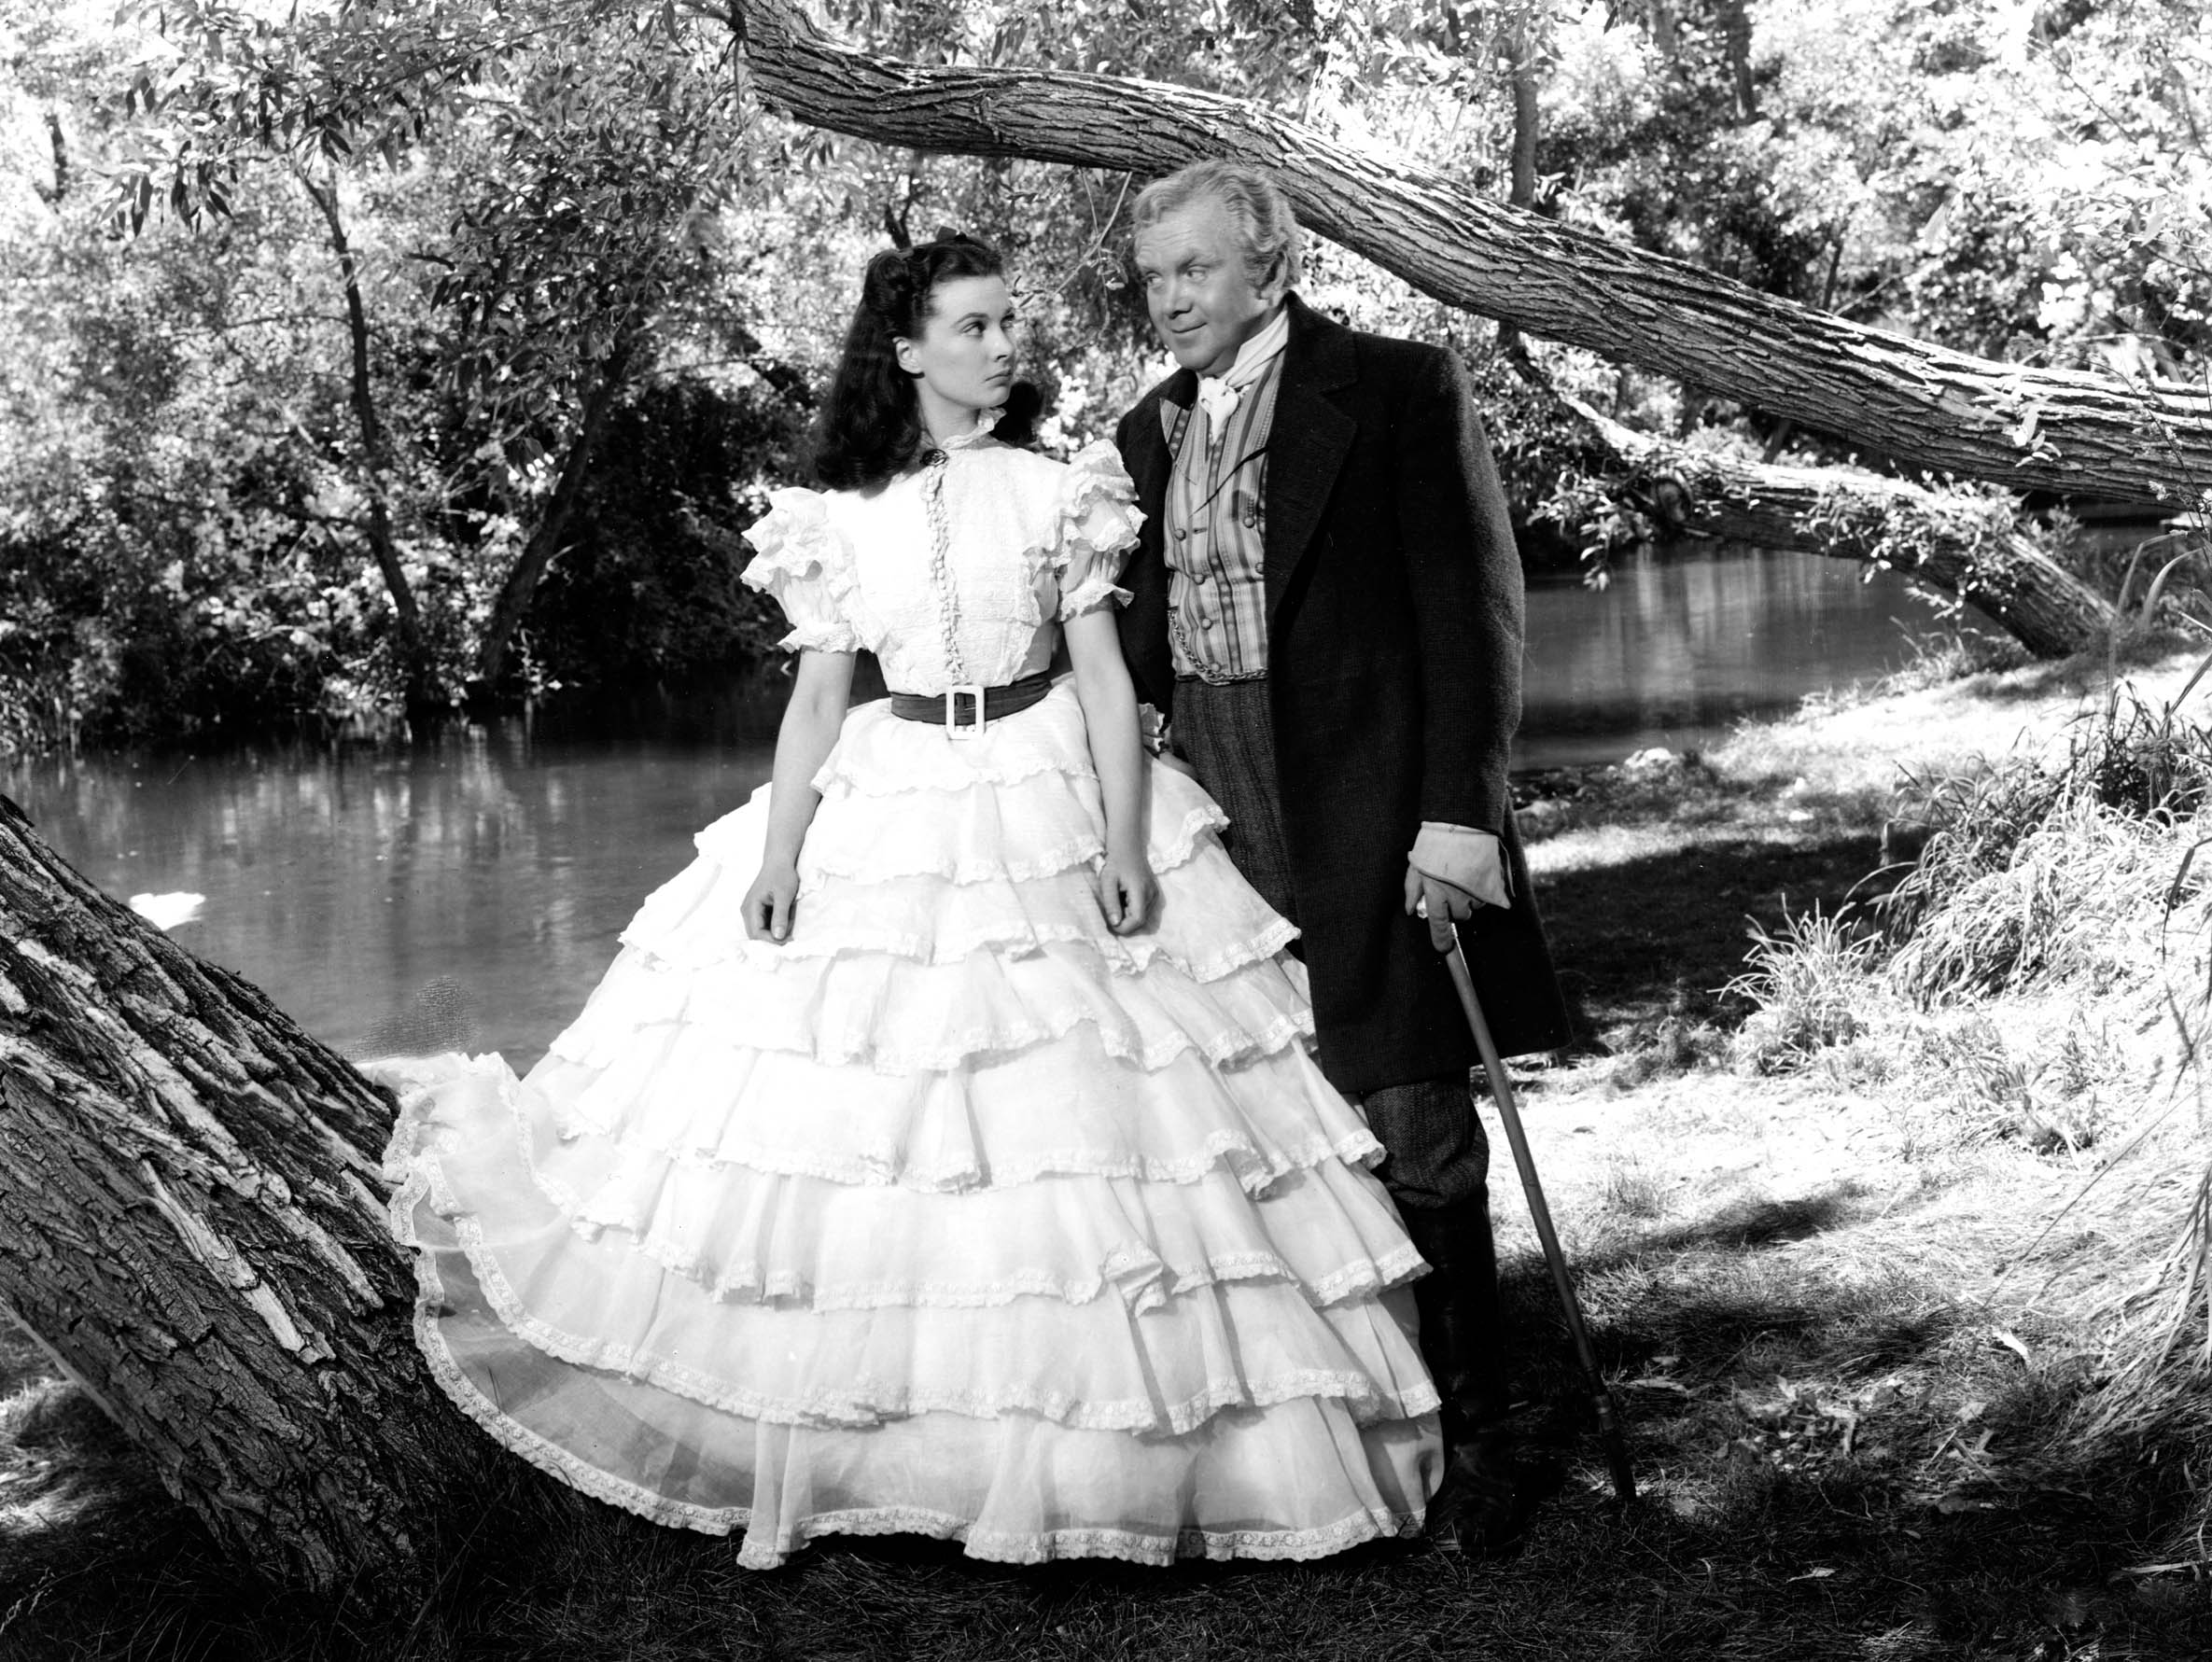 Gone with the wind full hd wallpaper and background image 2370x1781 id 626416 - Gone with the wind download ...